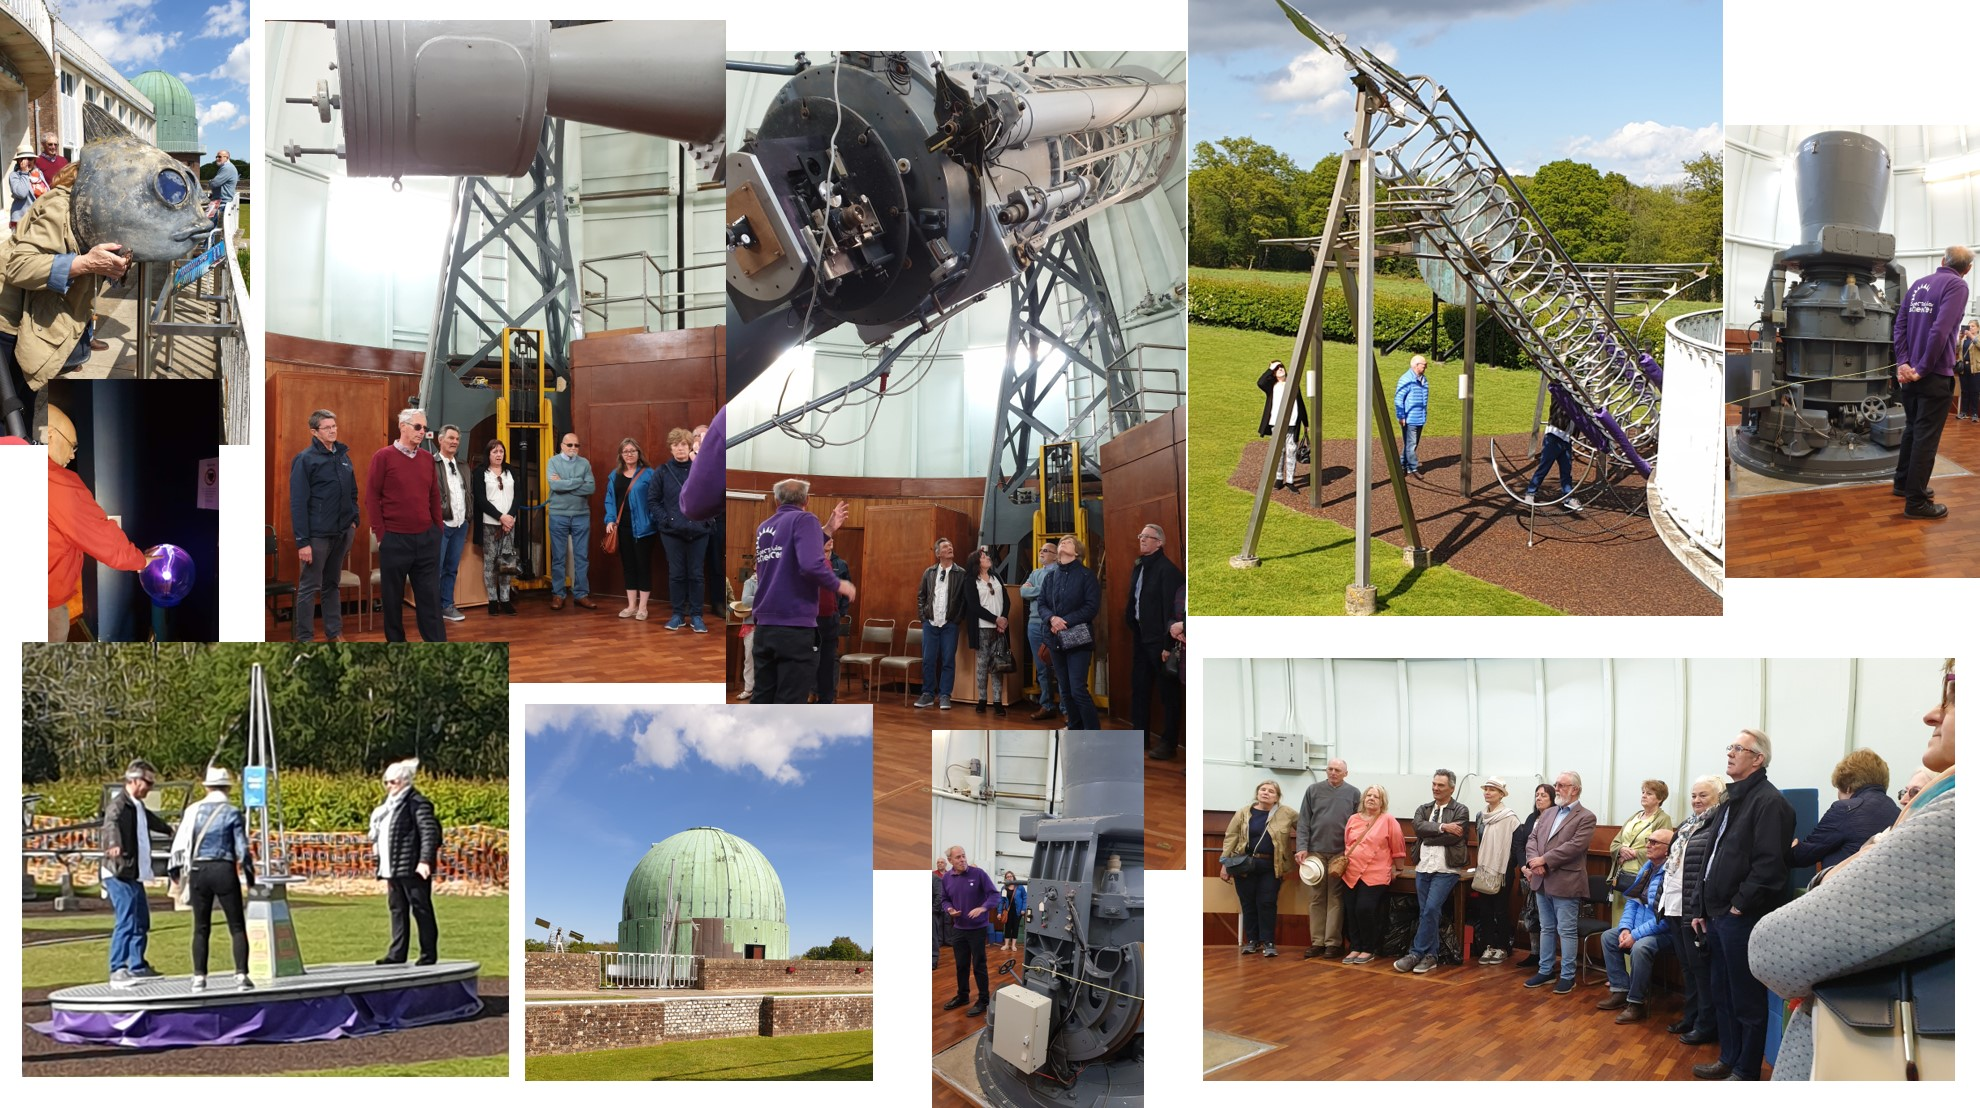 Friends and family of the Michelham Priory Lodge touring the The Observatory Science Centre Herstmonceux